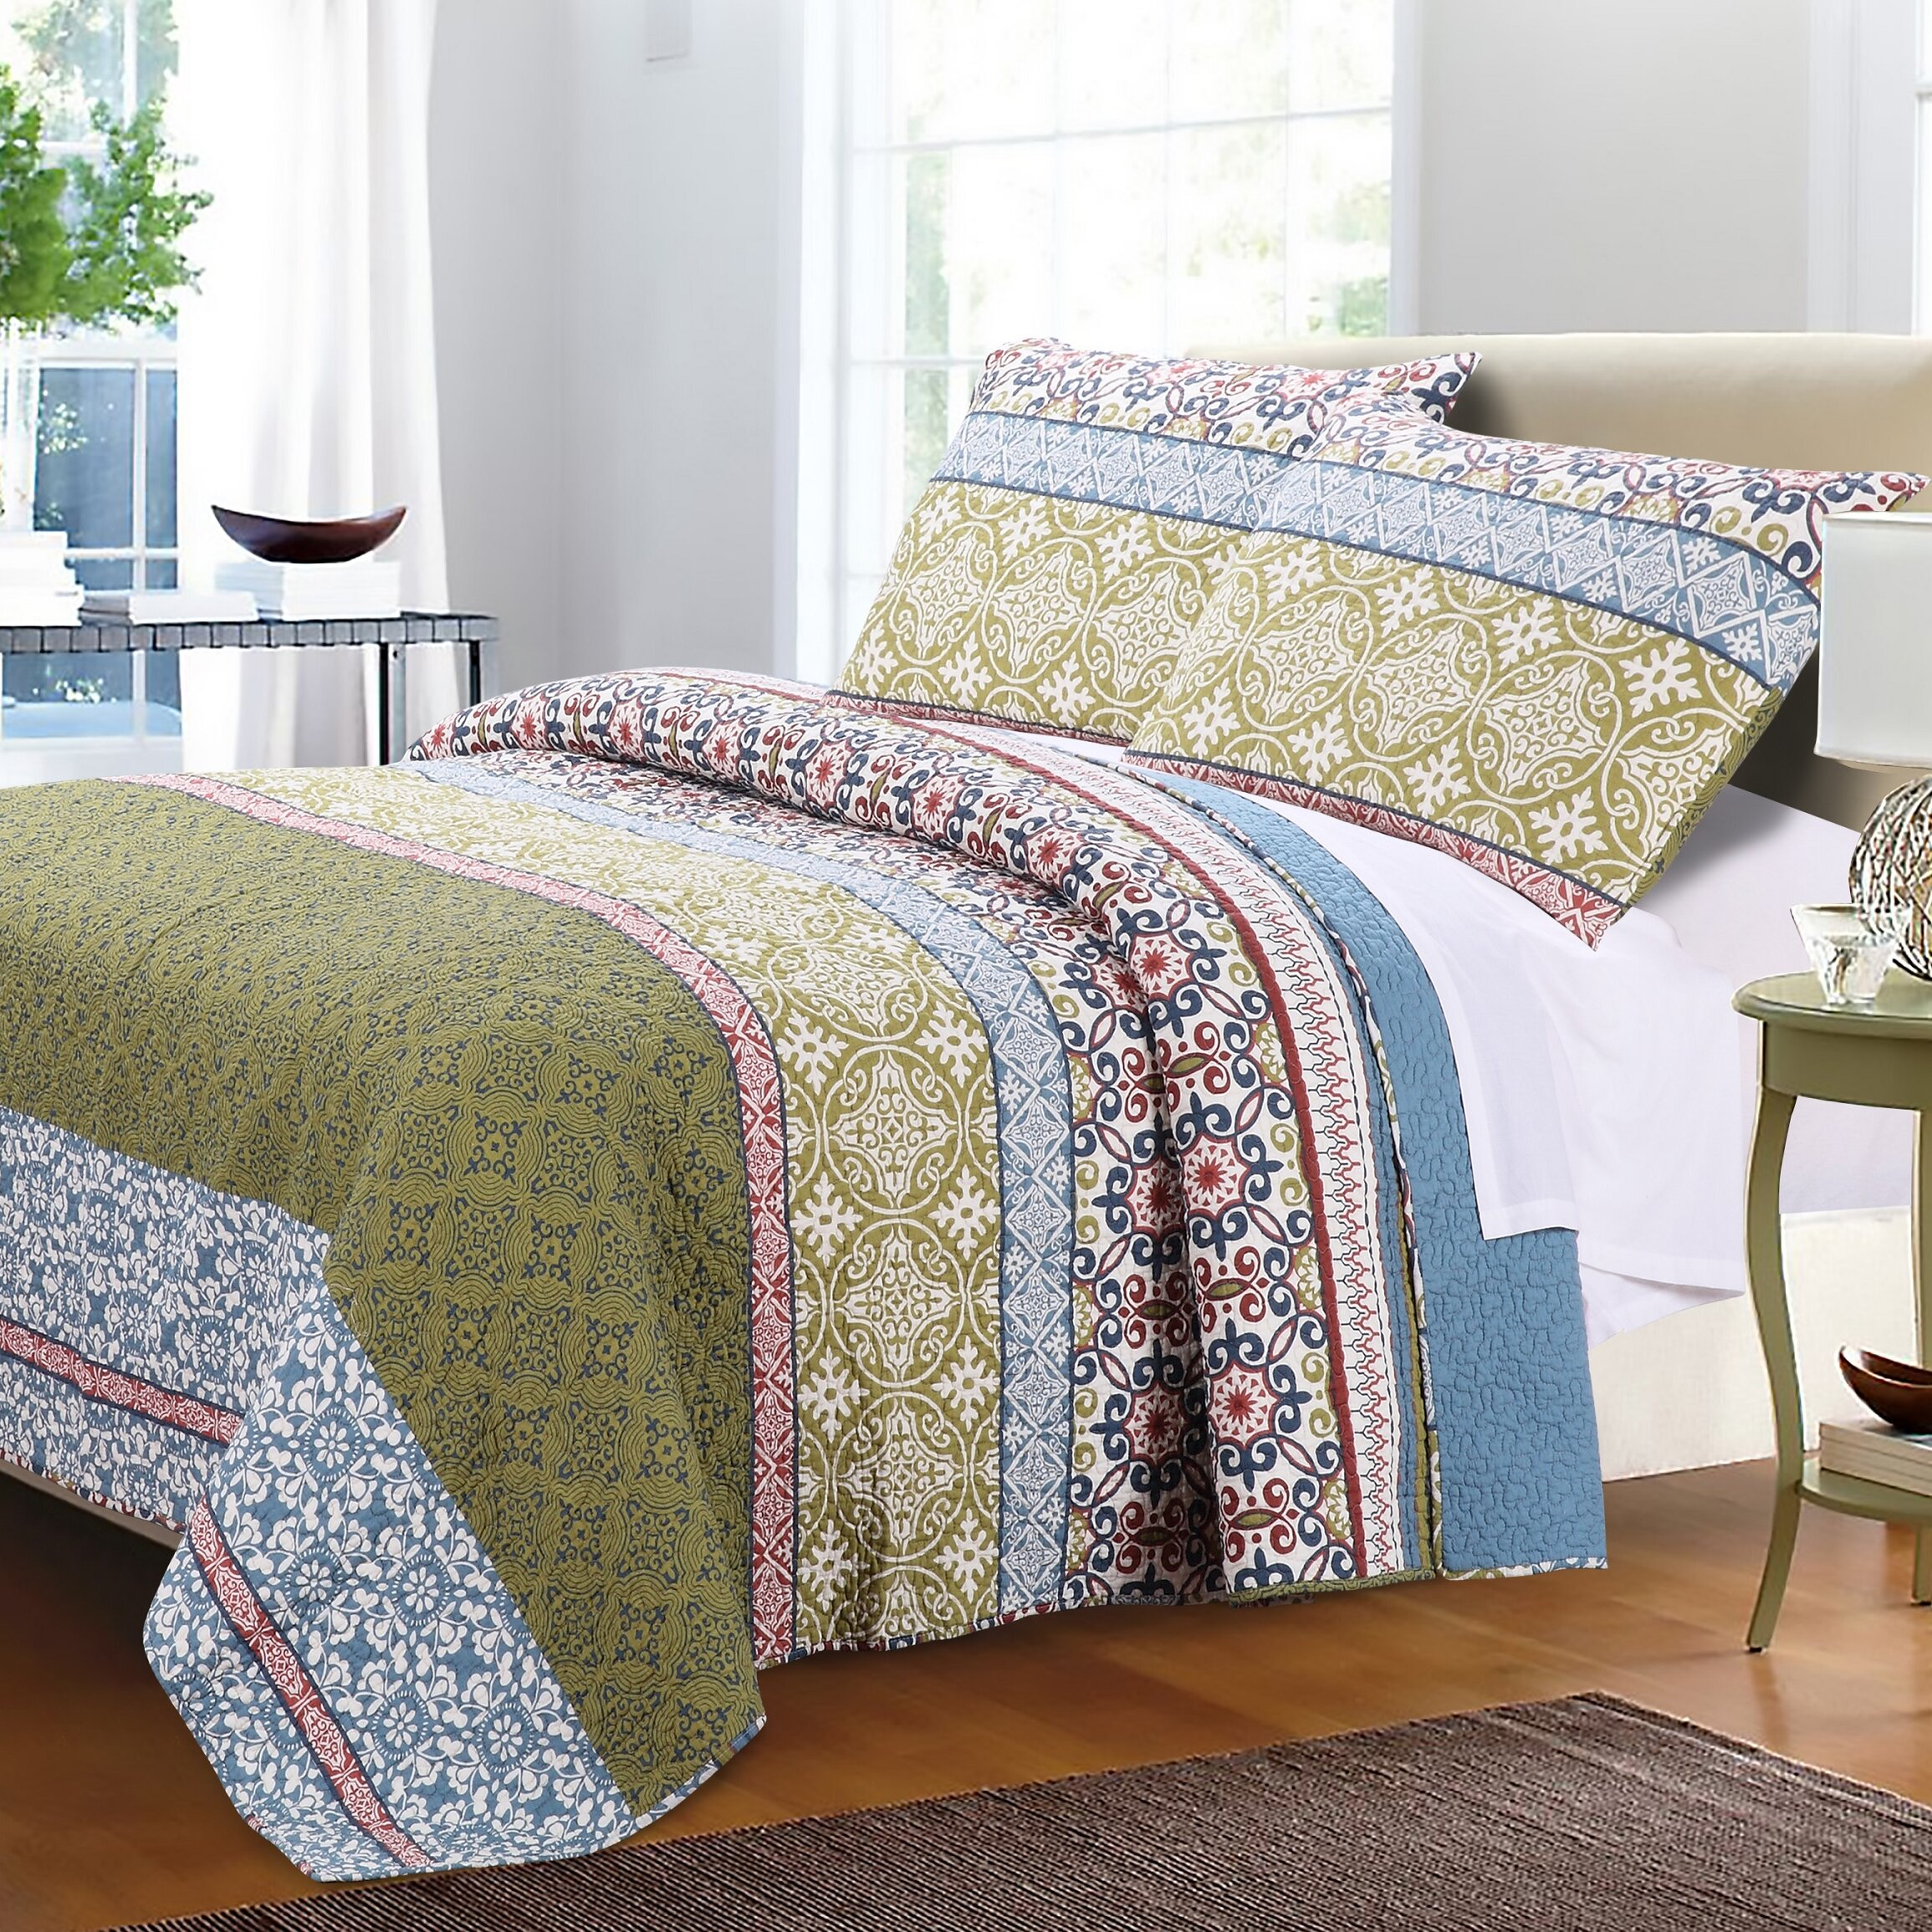 set duvet cover modern coverlets department home qe bonita cotton quilts sets quilt